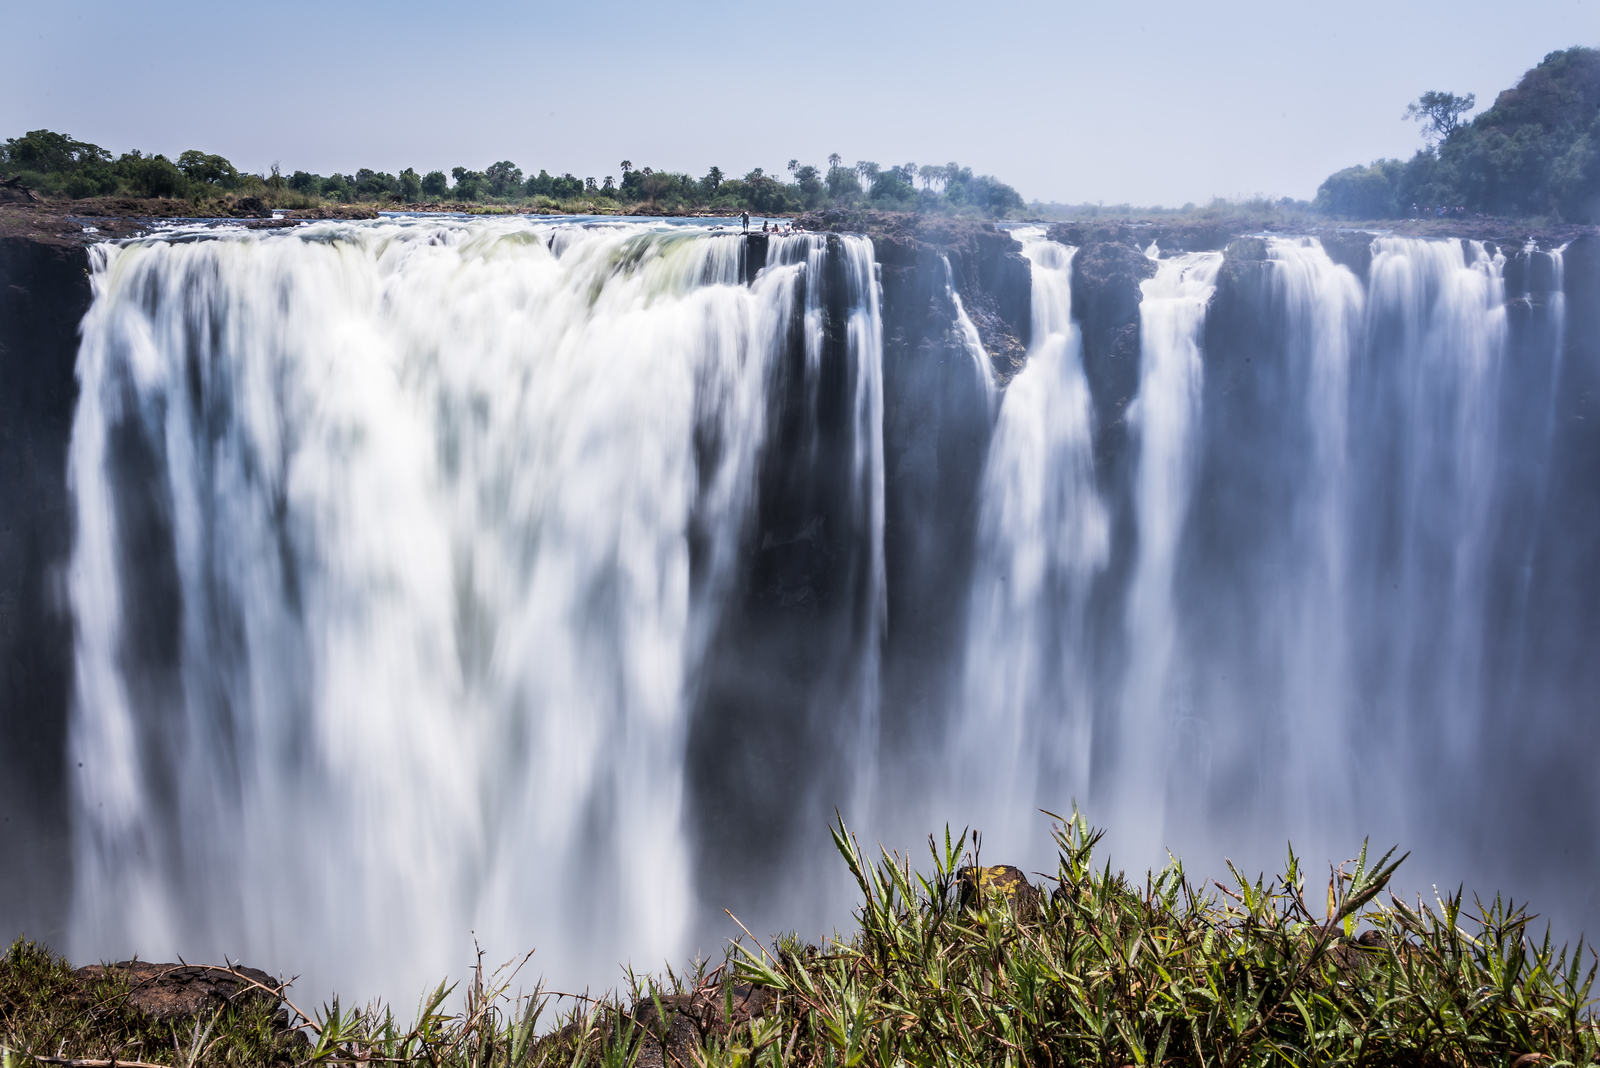 Victoria Falls - Livingstone Island and Devil's Pool